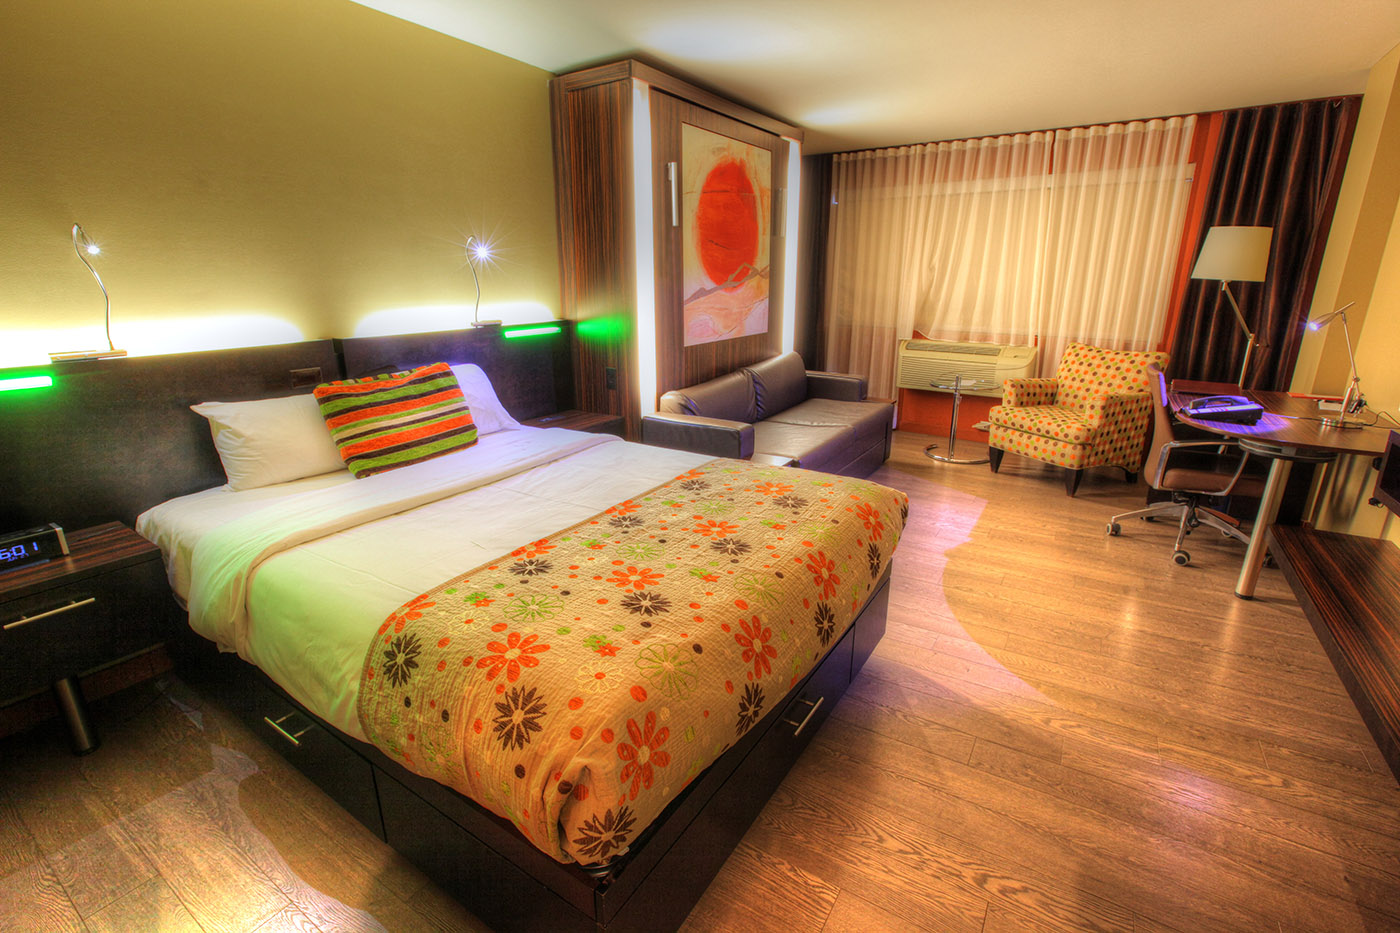 Colorful Hotel Room - Colorful Stock Photos